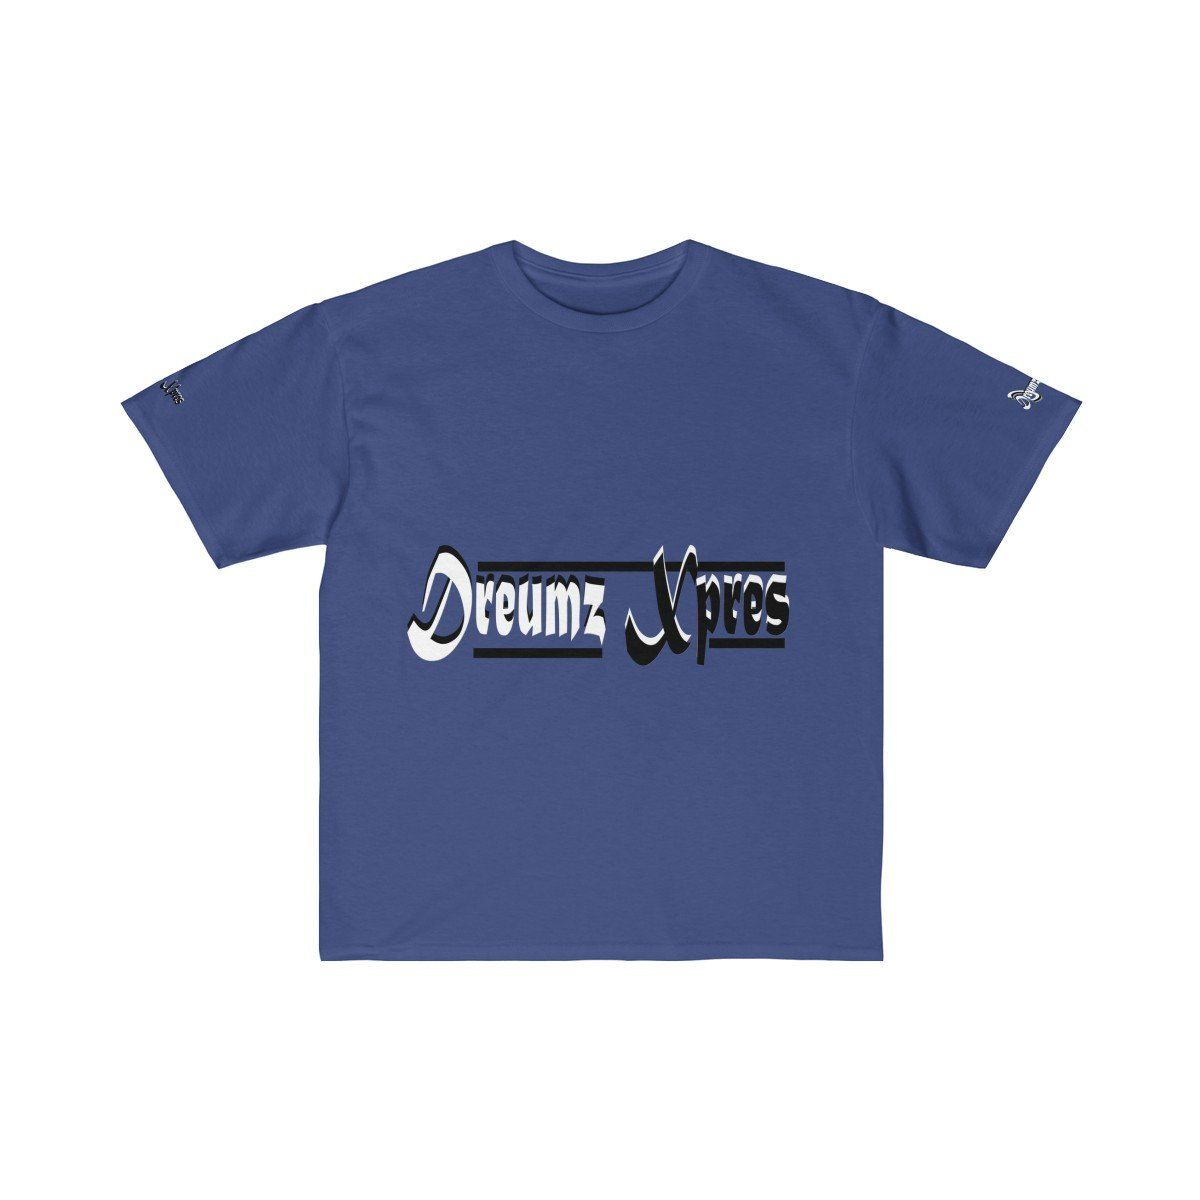 Youth Retail Fit Tee